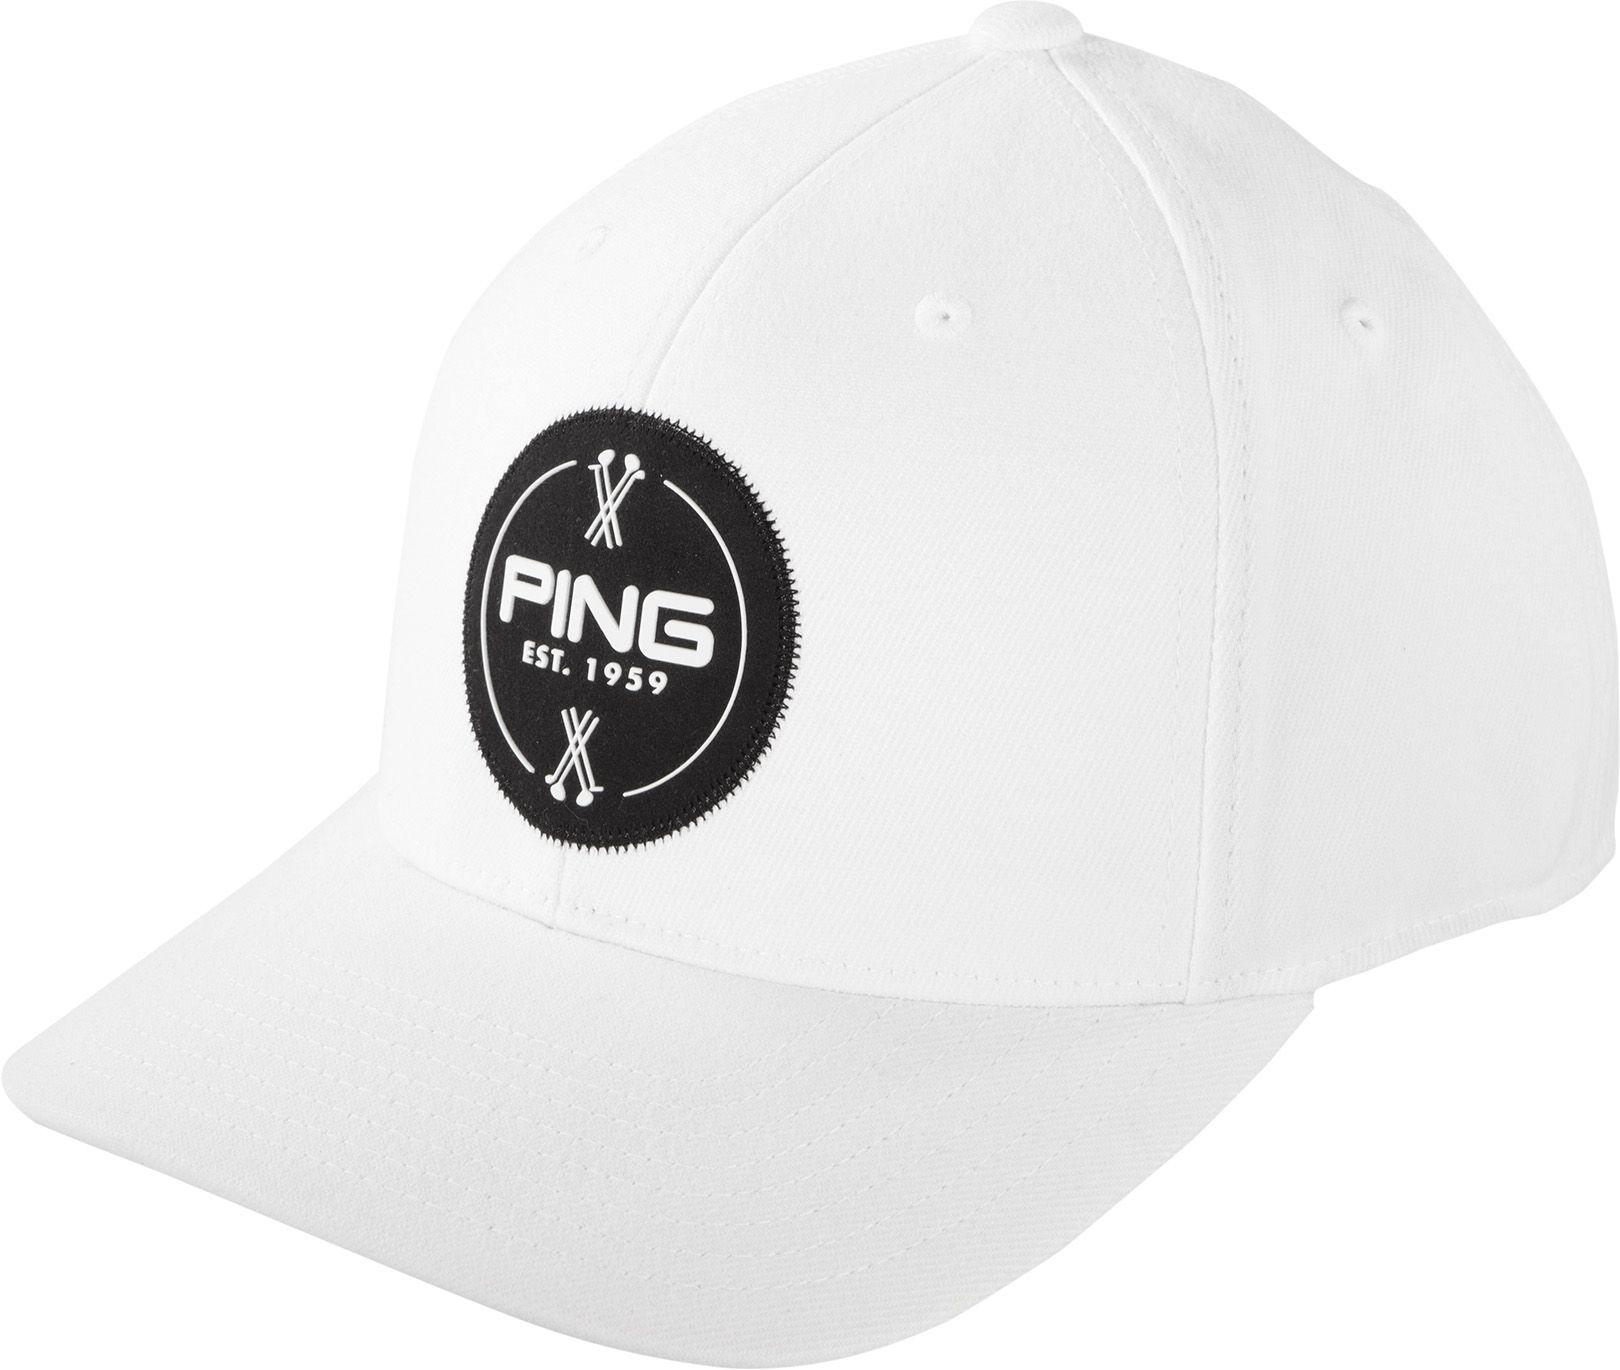 1cede61986d Ping - White Patch Golf Hat for Men - Lyst. View fullscreen